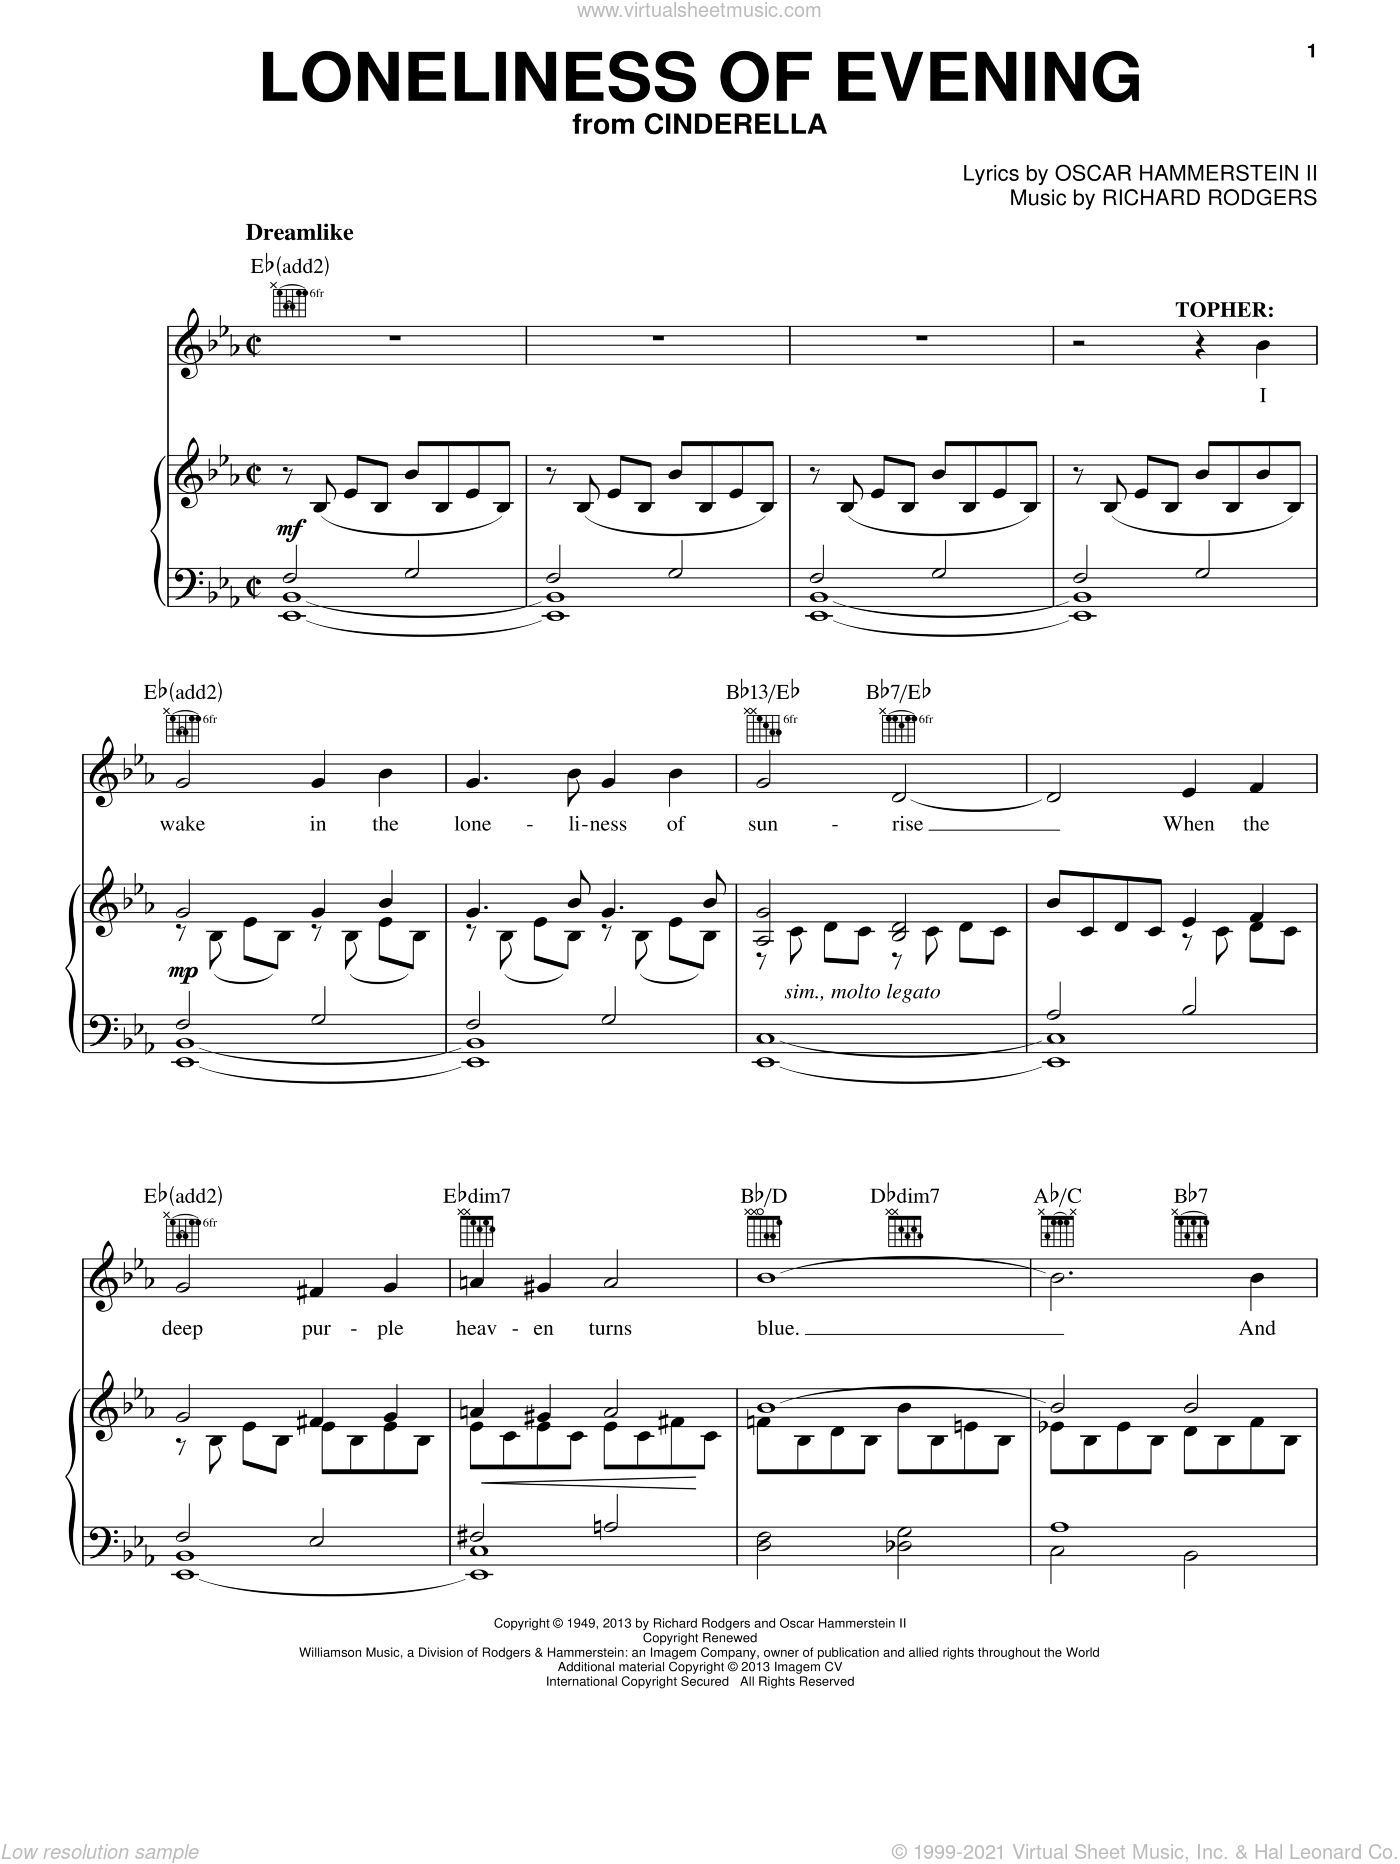 Loneliness Of Evening sheet music for voice, piano or guitar by Rodgers & Hammerstein, Oscar II Hammerstein and Richard Rodgers. Score Image Preview.